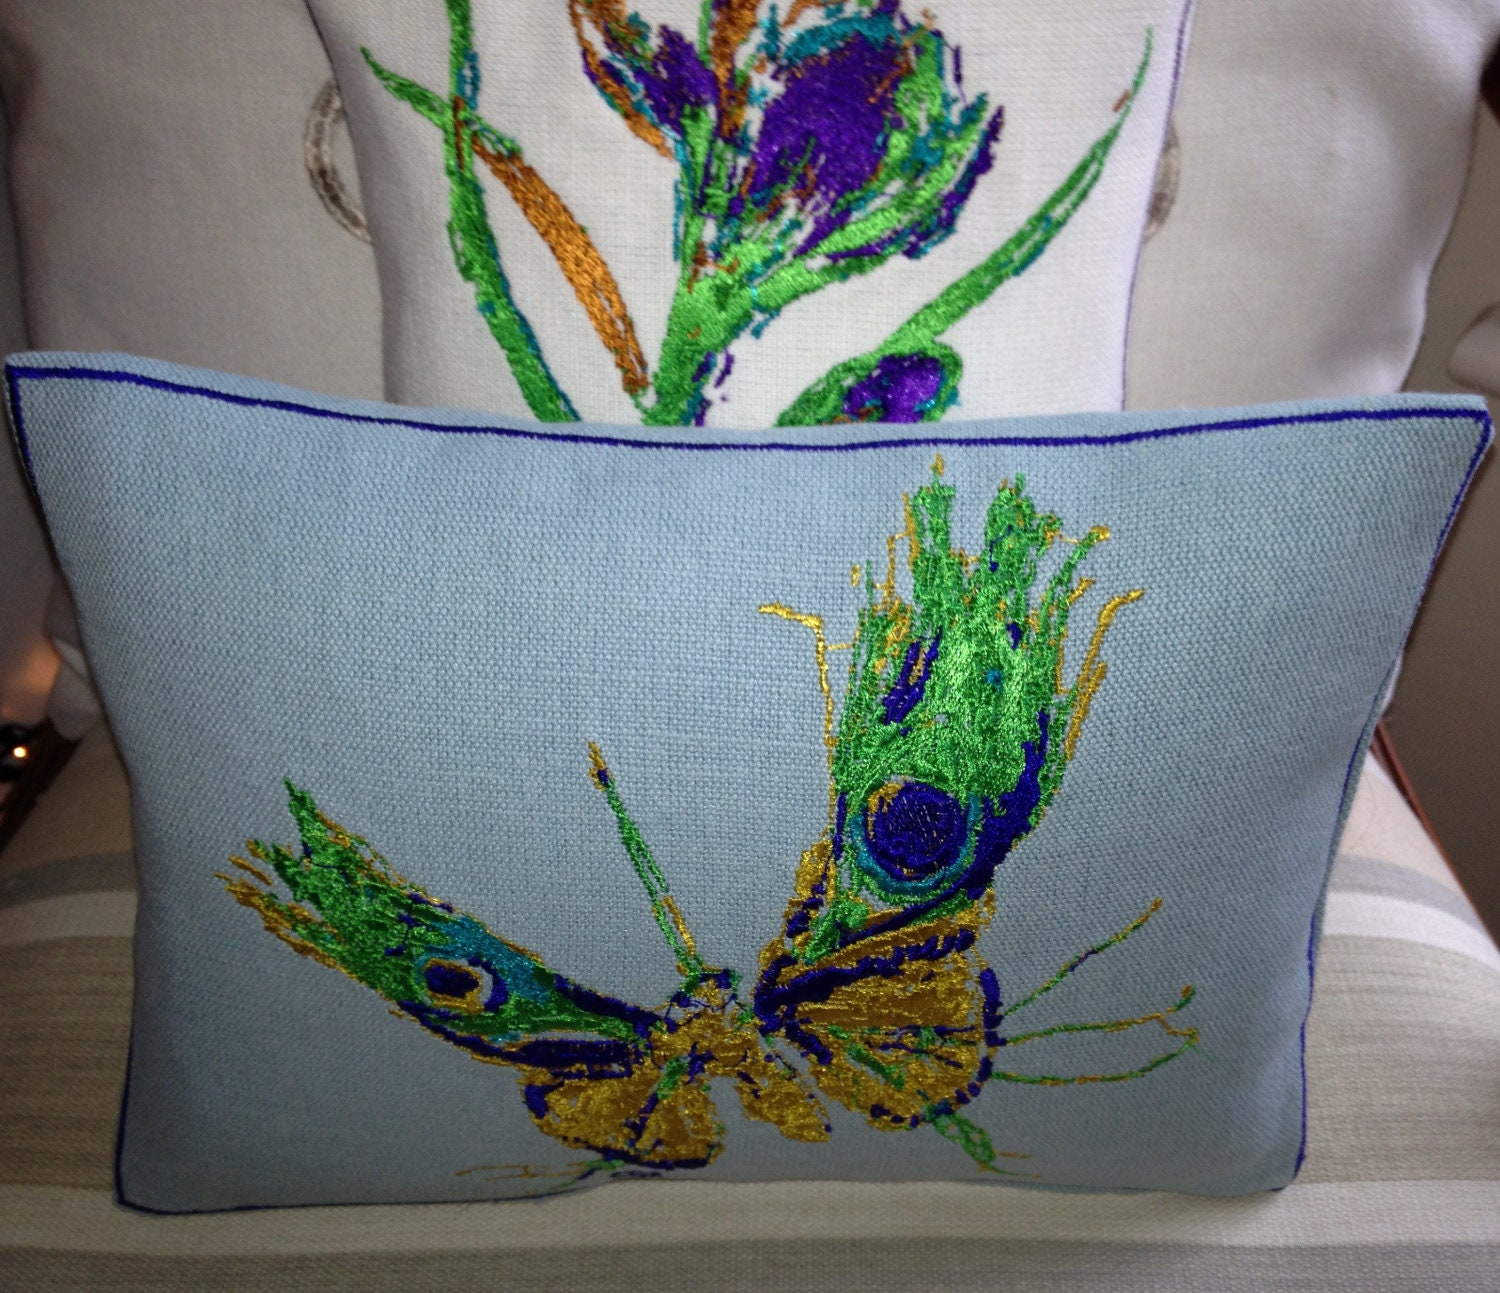 Artistic Embroidery Peacock Butterfly, Cushion Throw